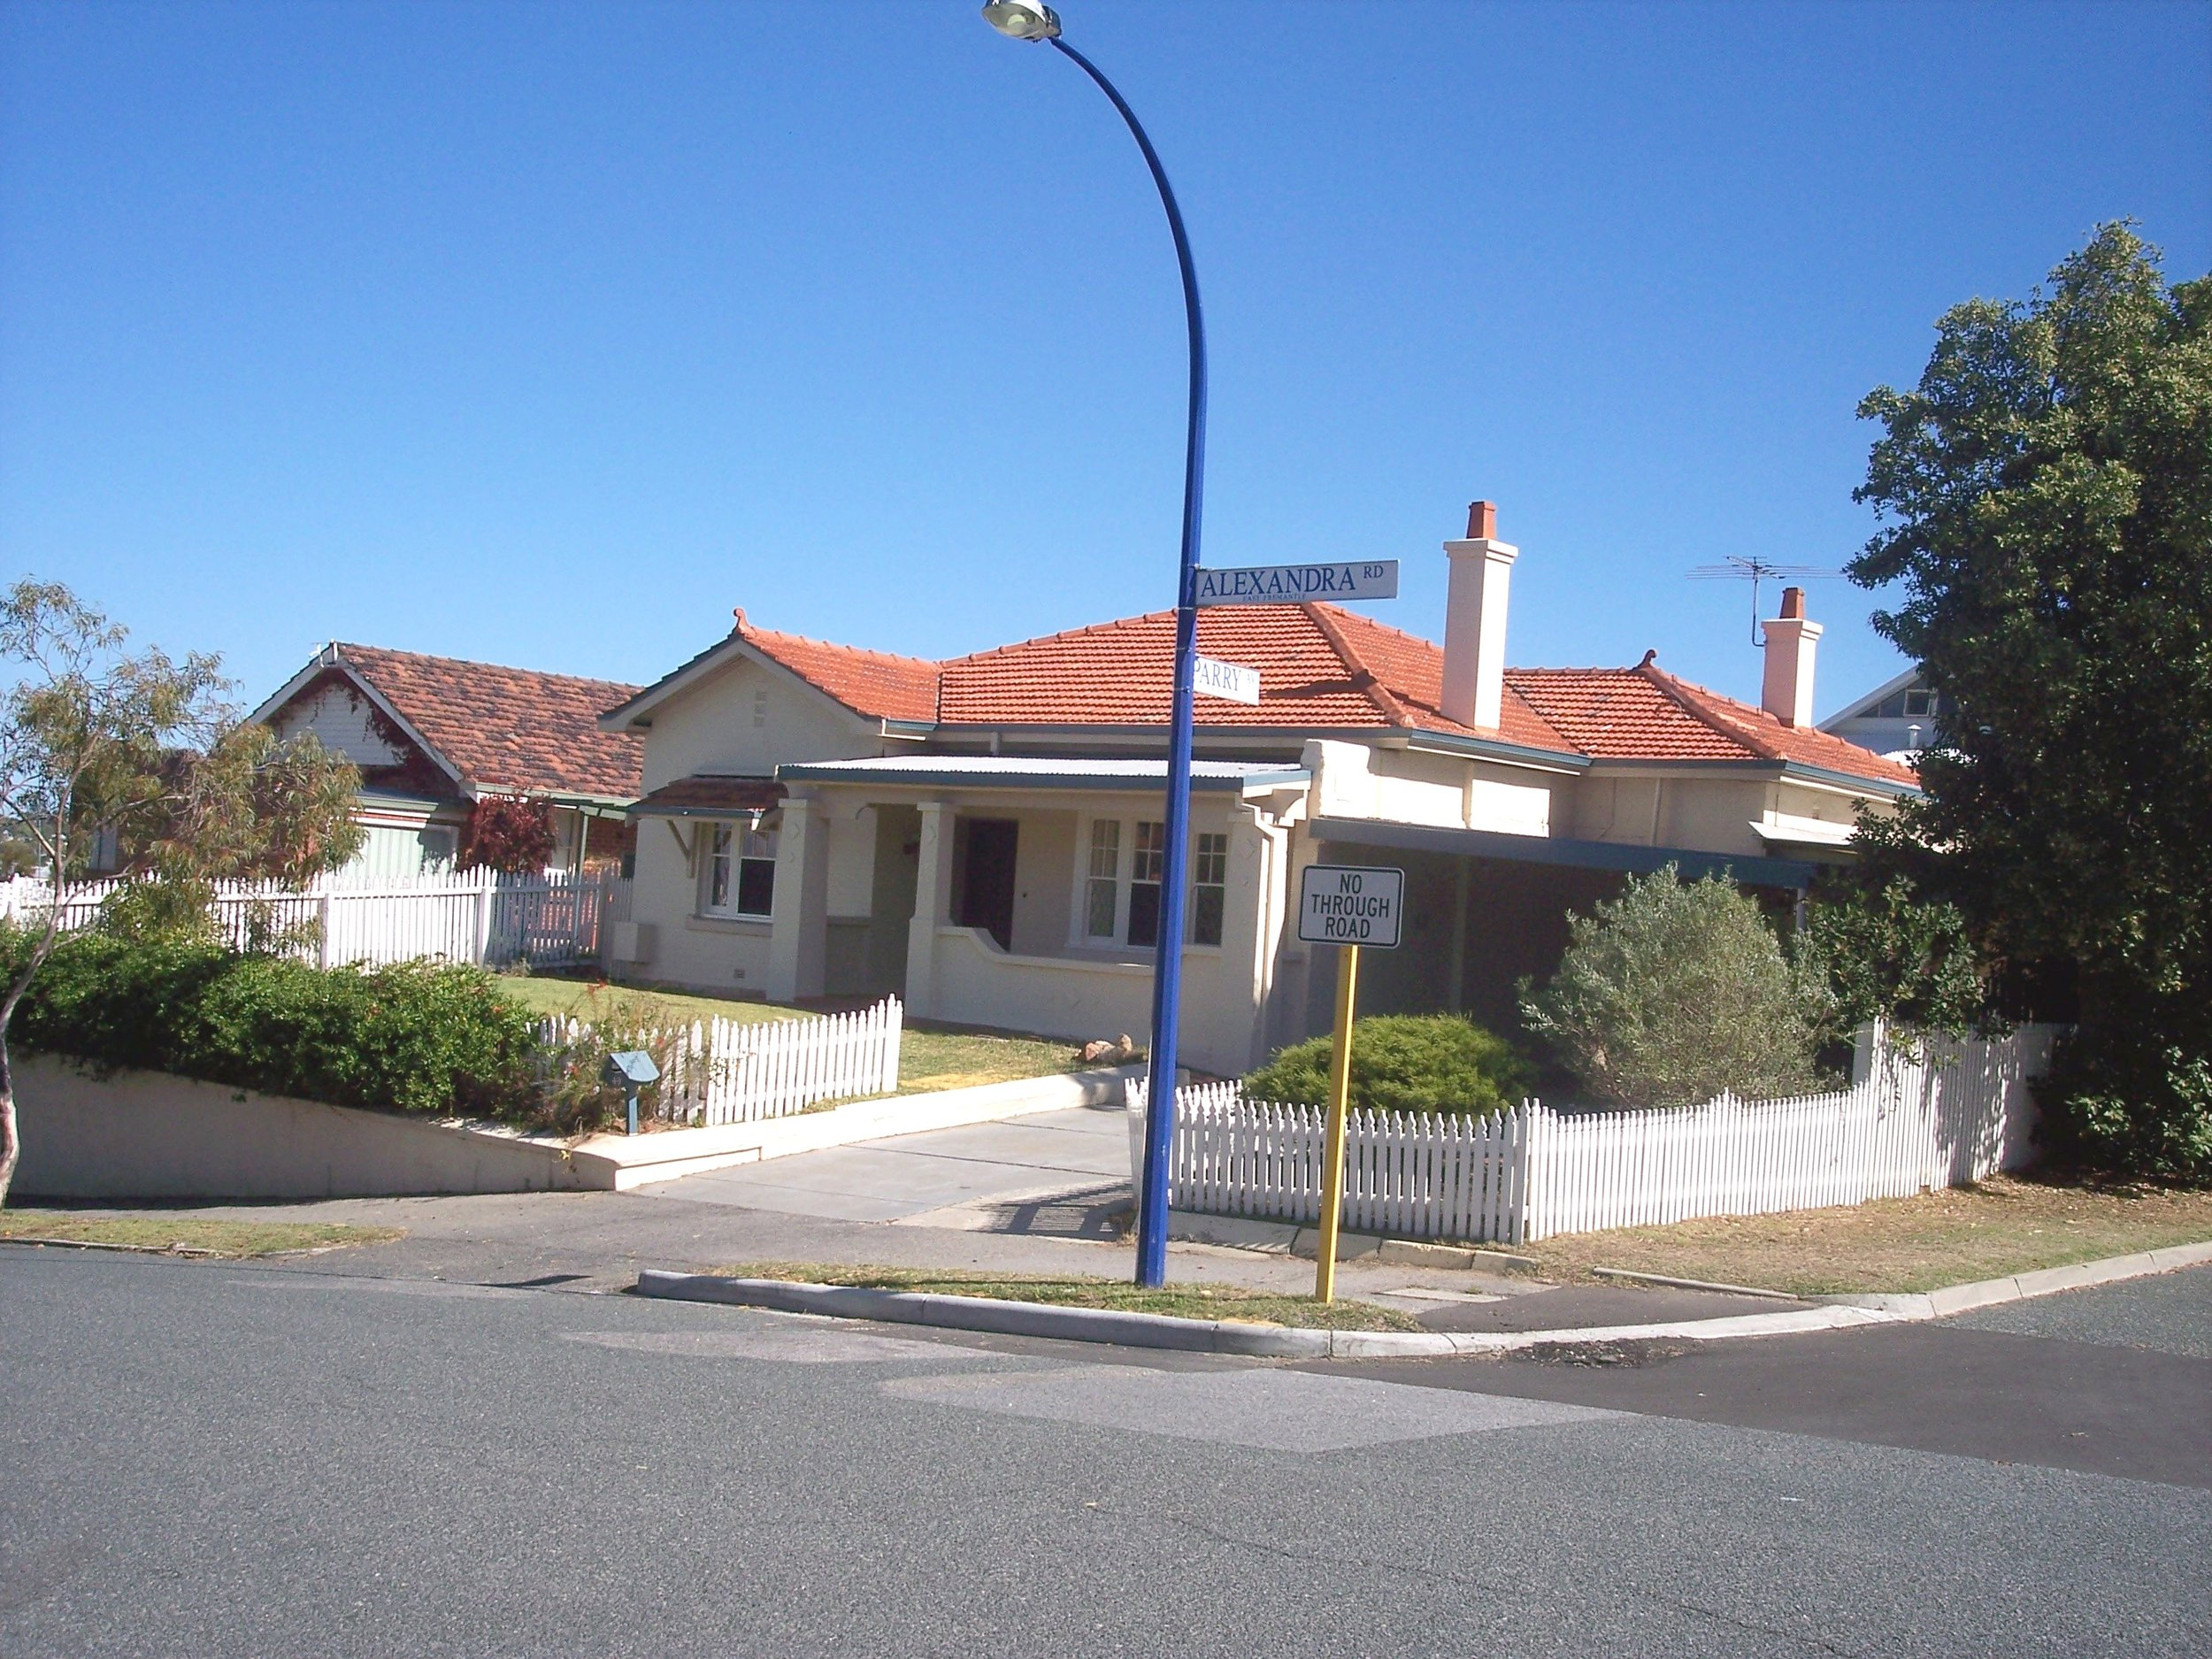 27-4-06 View WSW 49 Alexandra Road.jpg